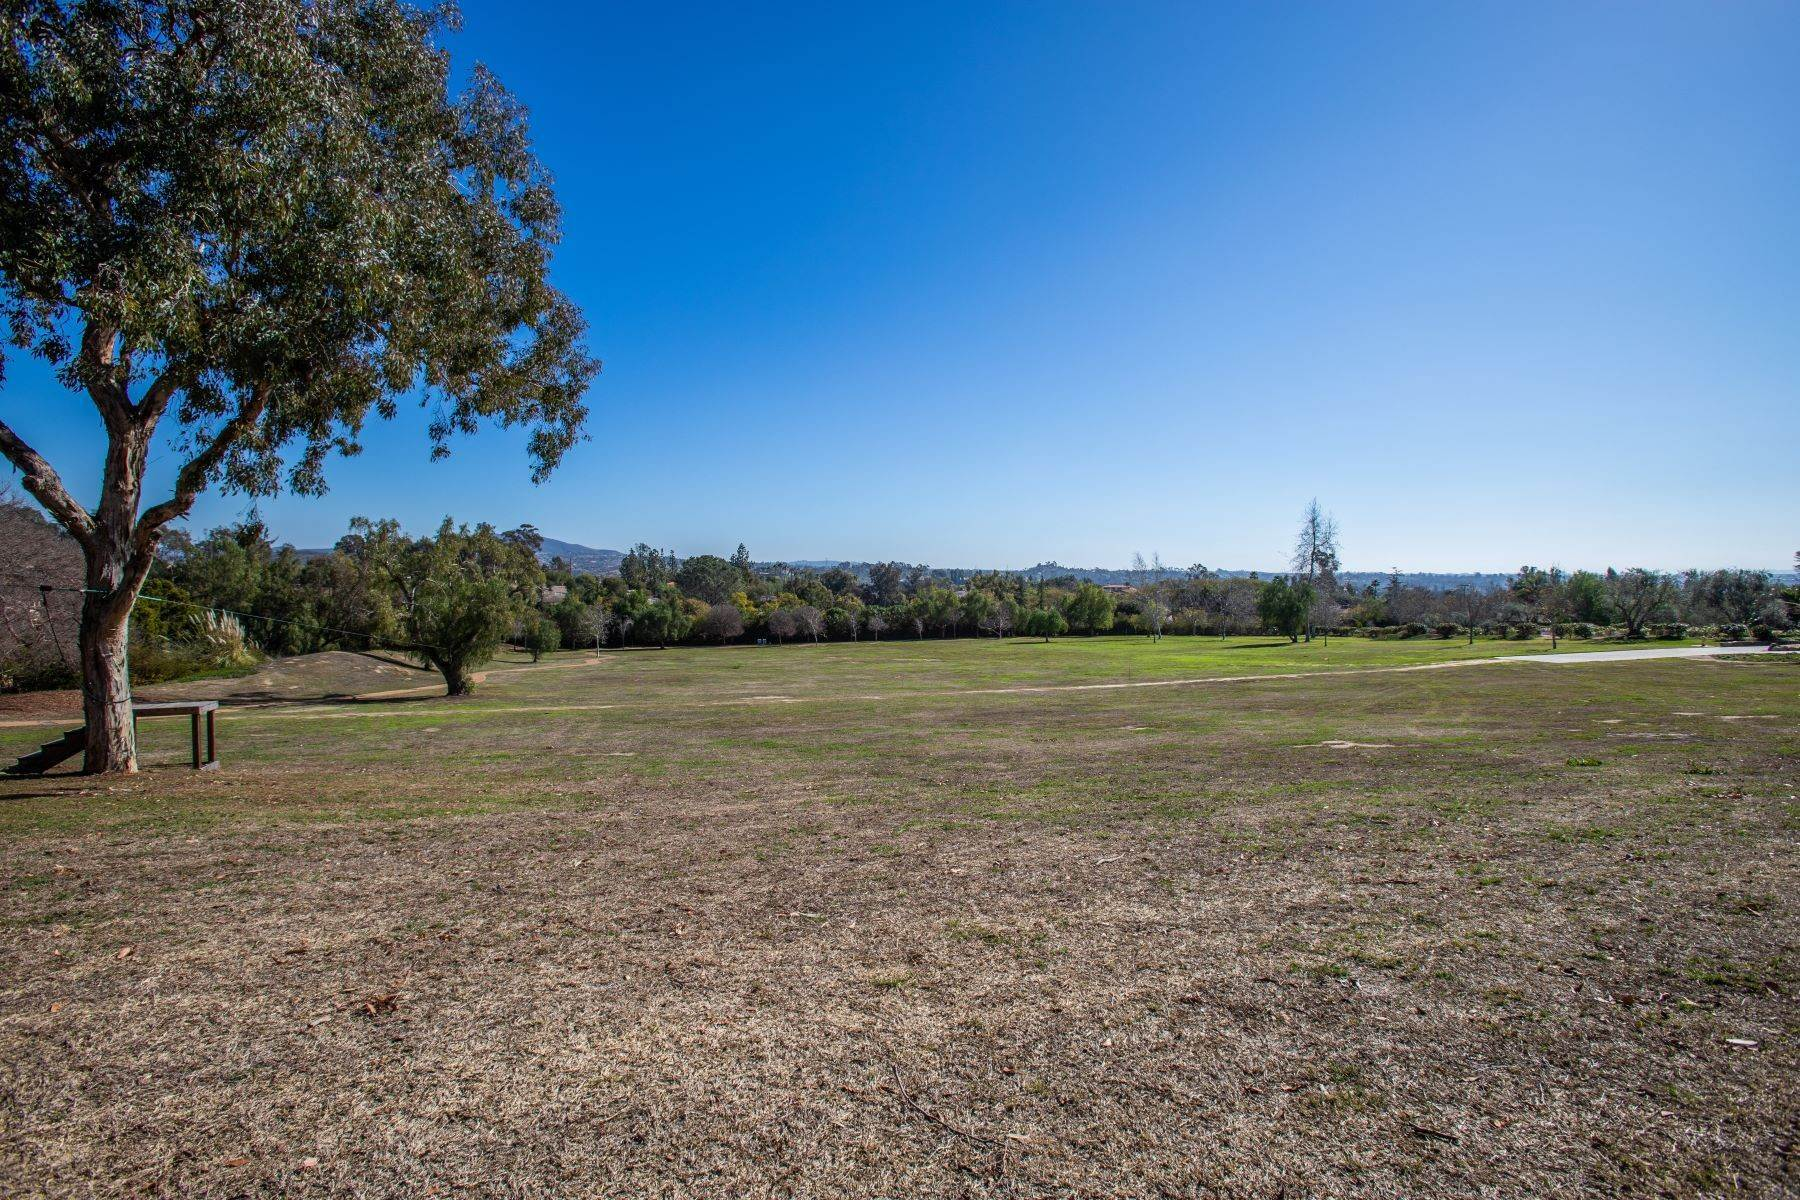 9. Land for Sale at 17048 El Mirador, Rancho Santa Fe, CA 92067 17048 El Mirador Rancho Santa Fe, California 92067 United States